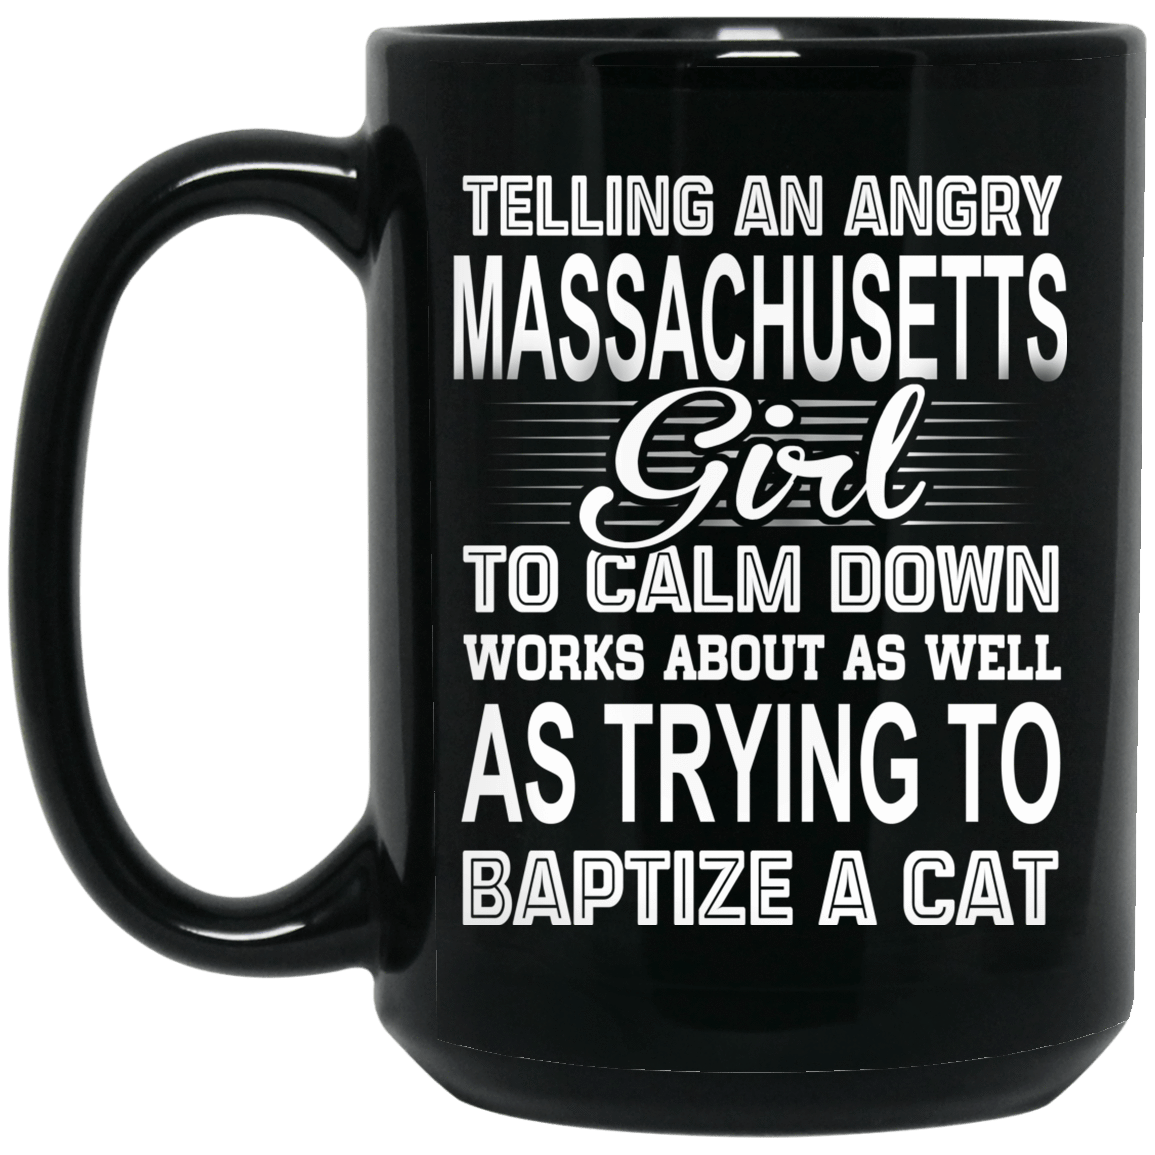 Telling An Angry Massachusetts Girl To Calm Down Works About As Well As Trying To Baptize A Cat Mug 1066-10182-76151636-49311 - Tee Ript